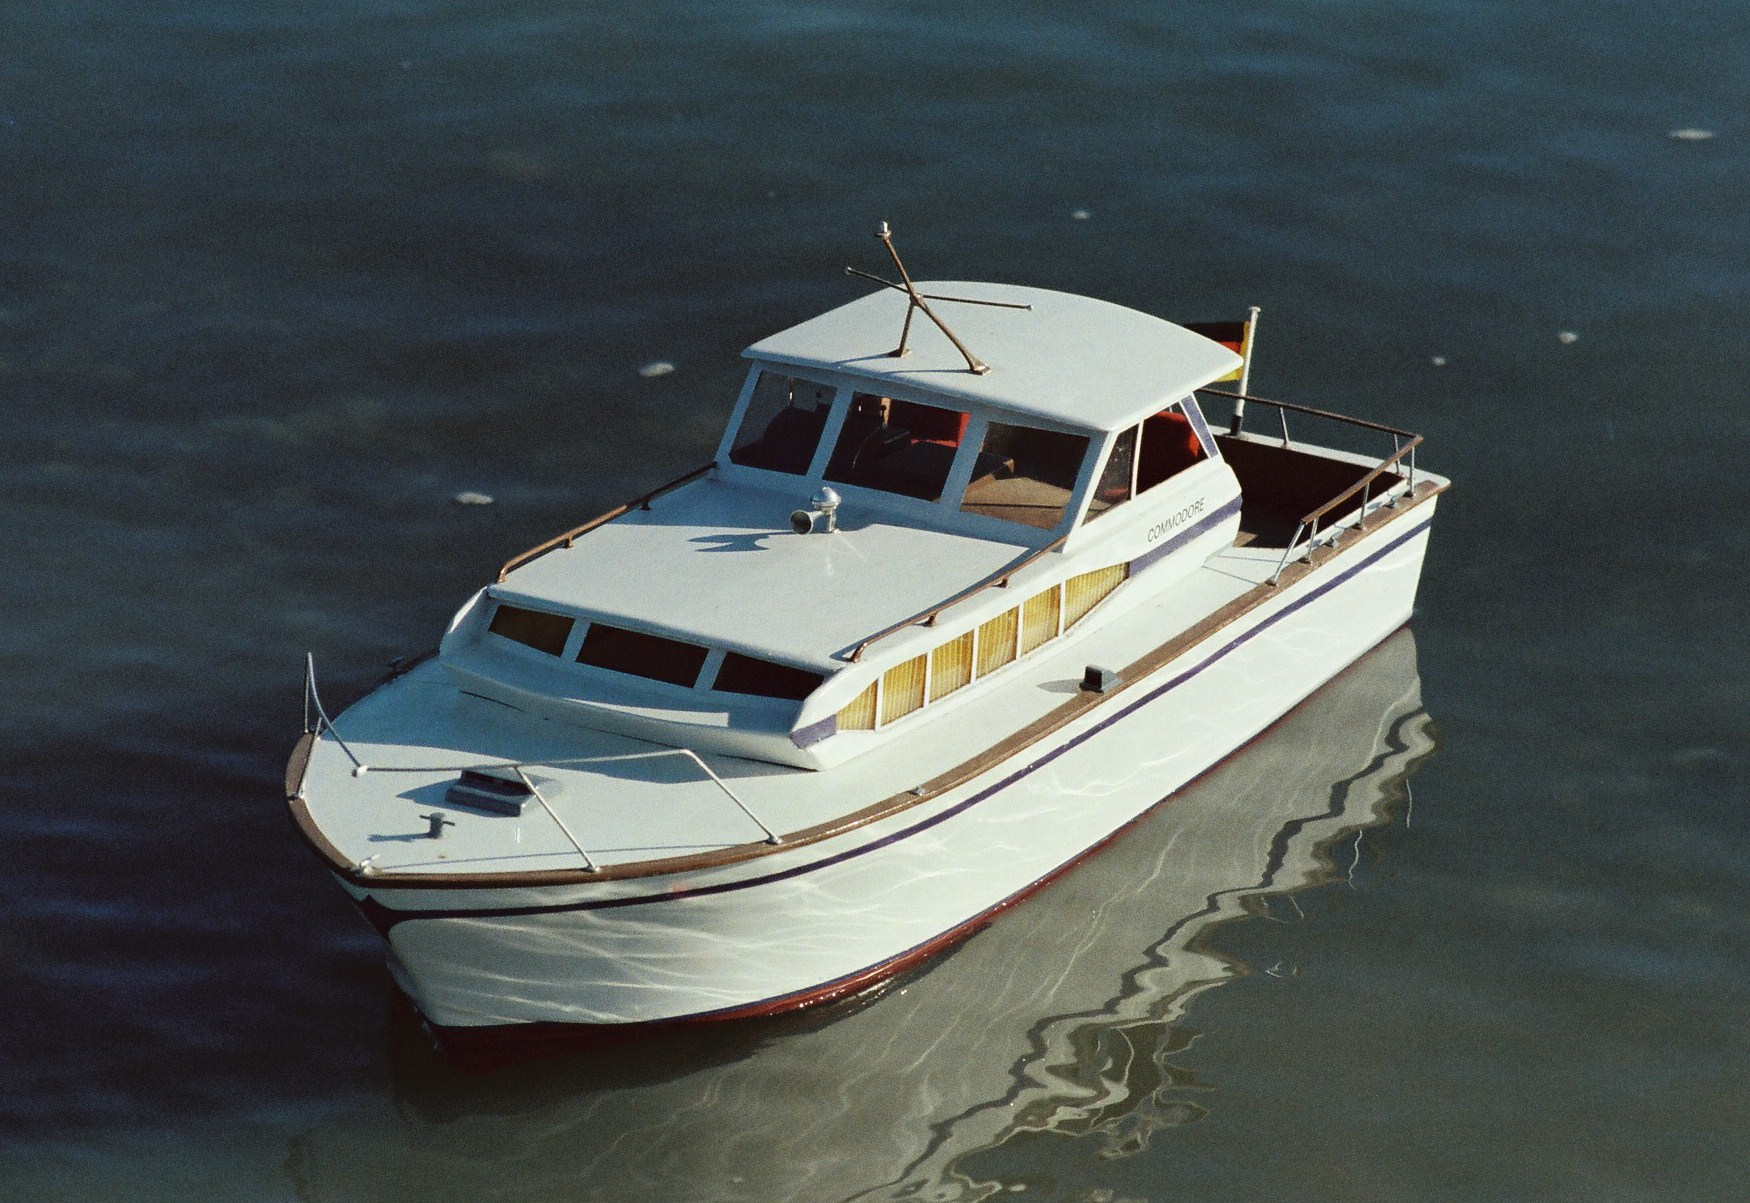 Who Owns Chris Craft Boats